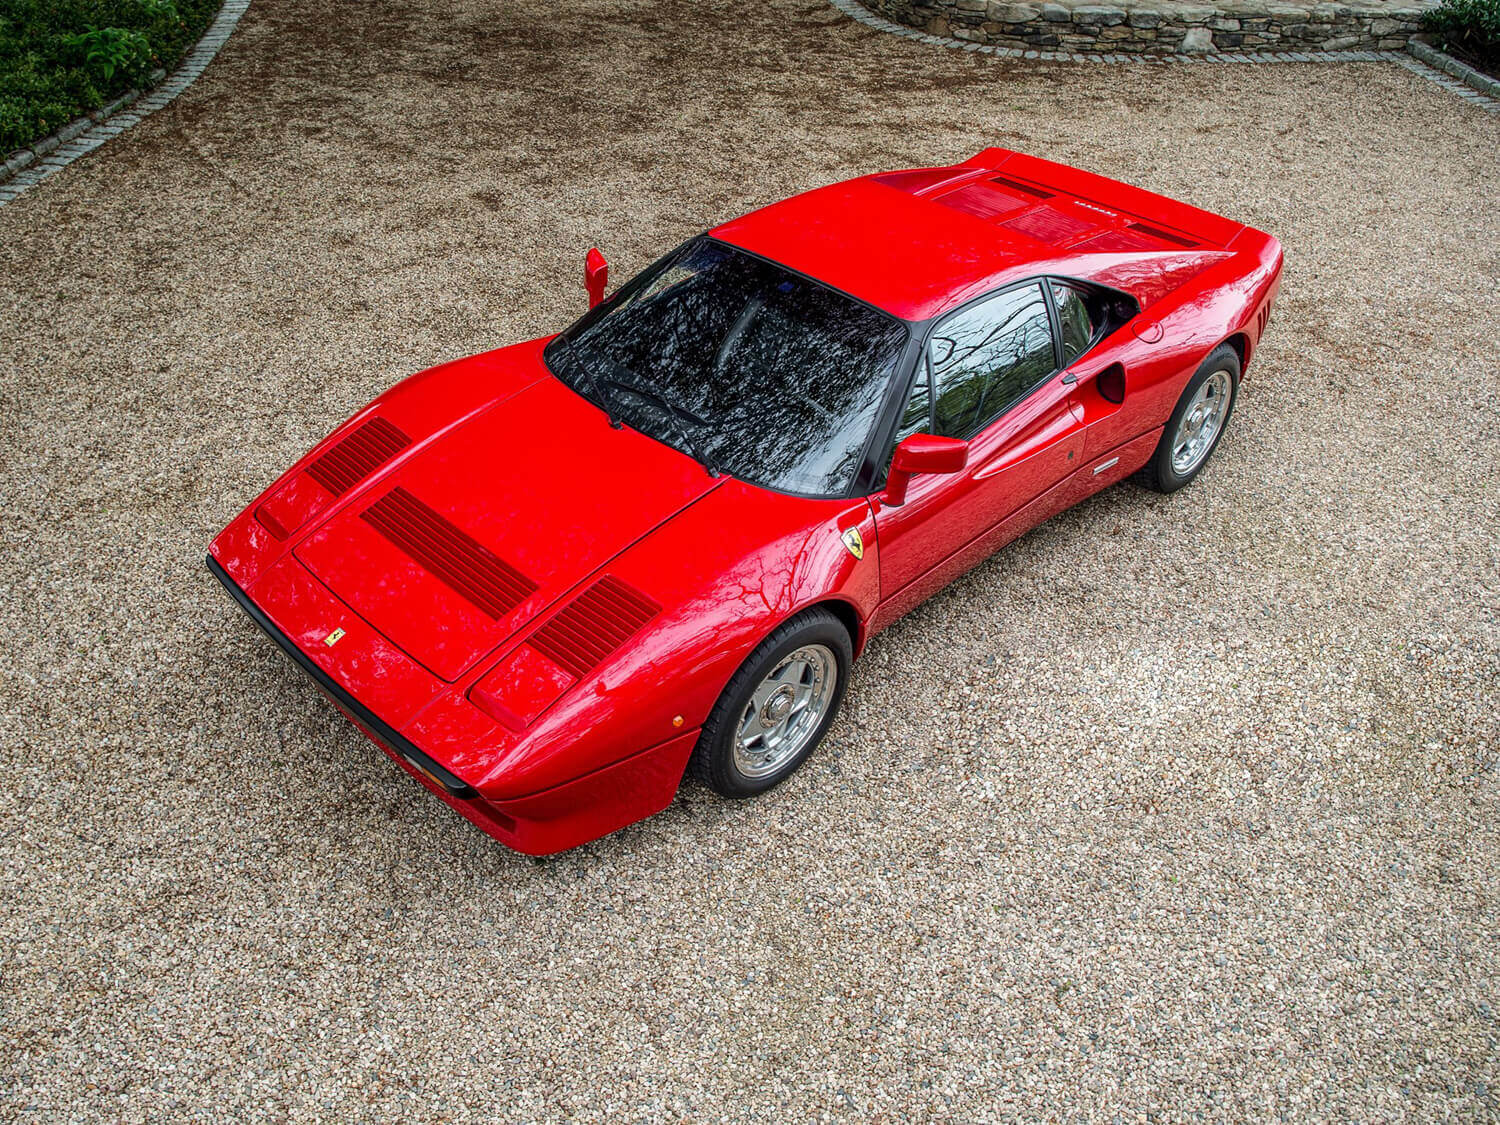 Mint Ferrari Enzo Sets Record For Most Expensive Car Ever Sold In Online Auction Techspot Forums